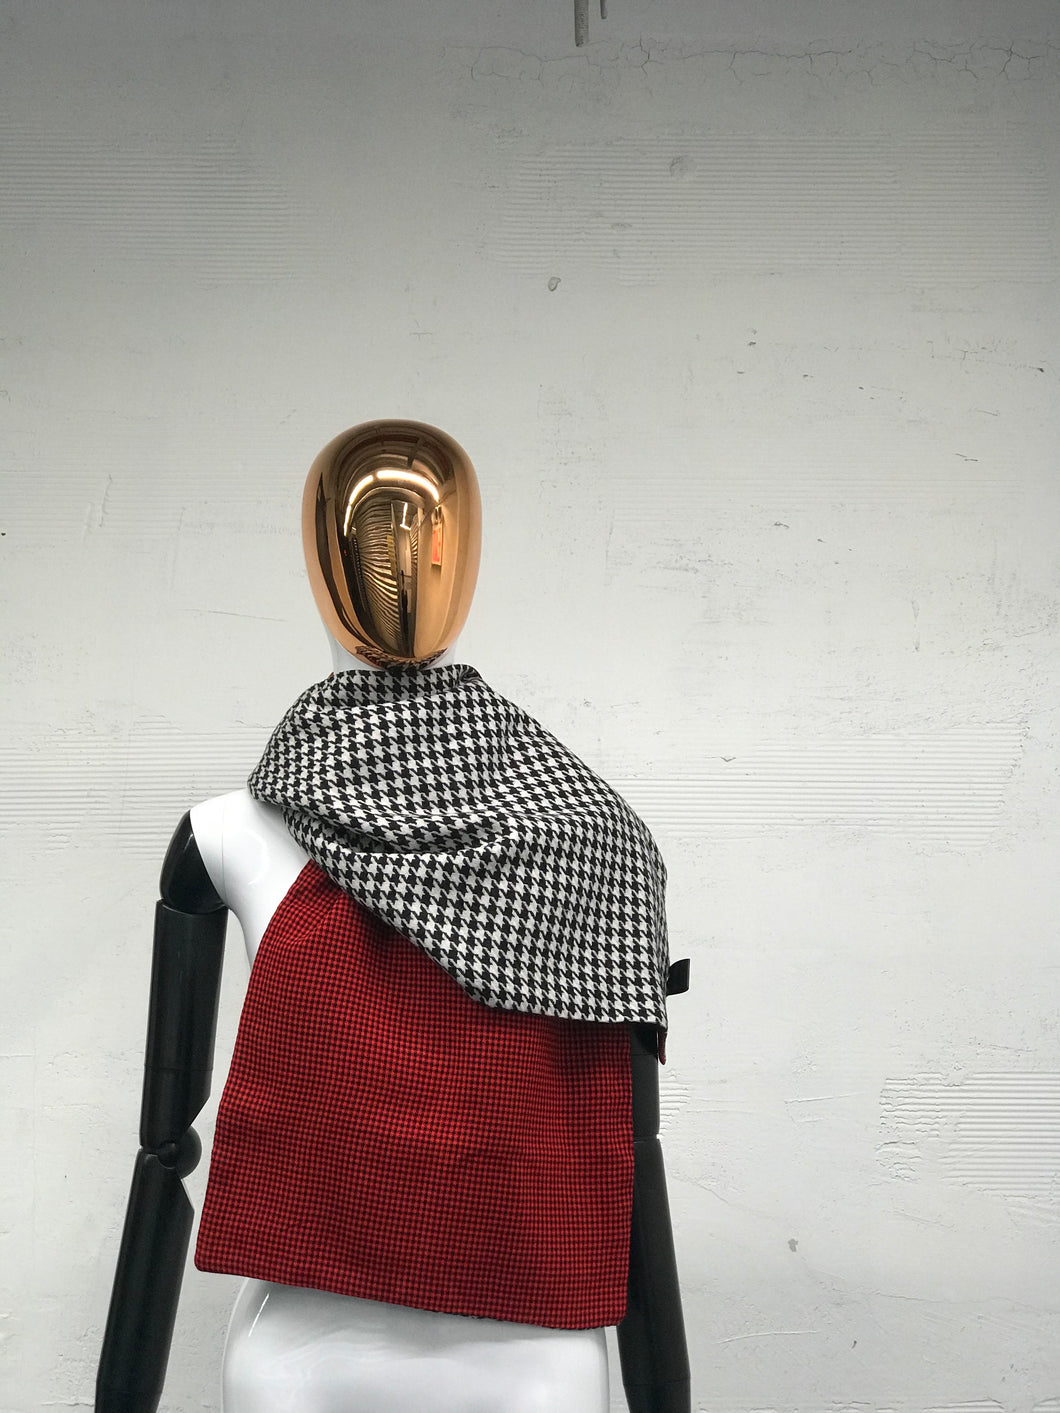 Maasai + Sherpa and Maasai + Hounds Tooth Wool Scarves - JUNNY.NYC